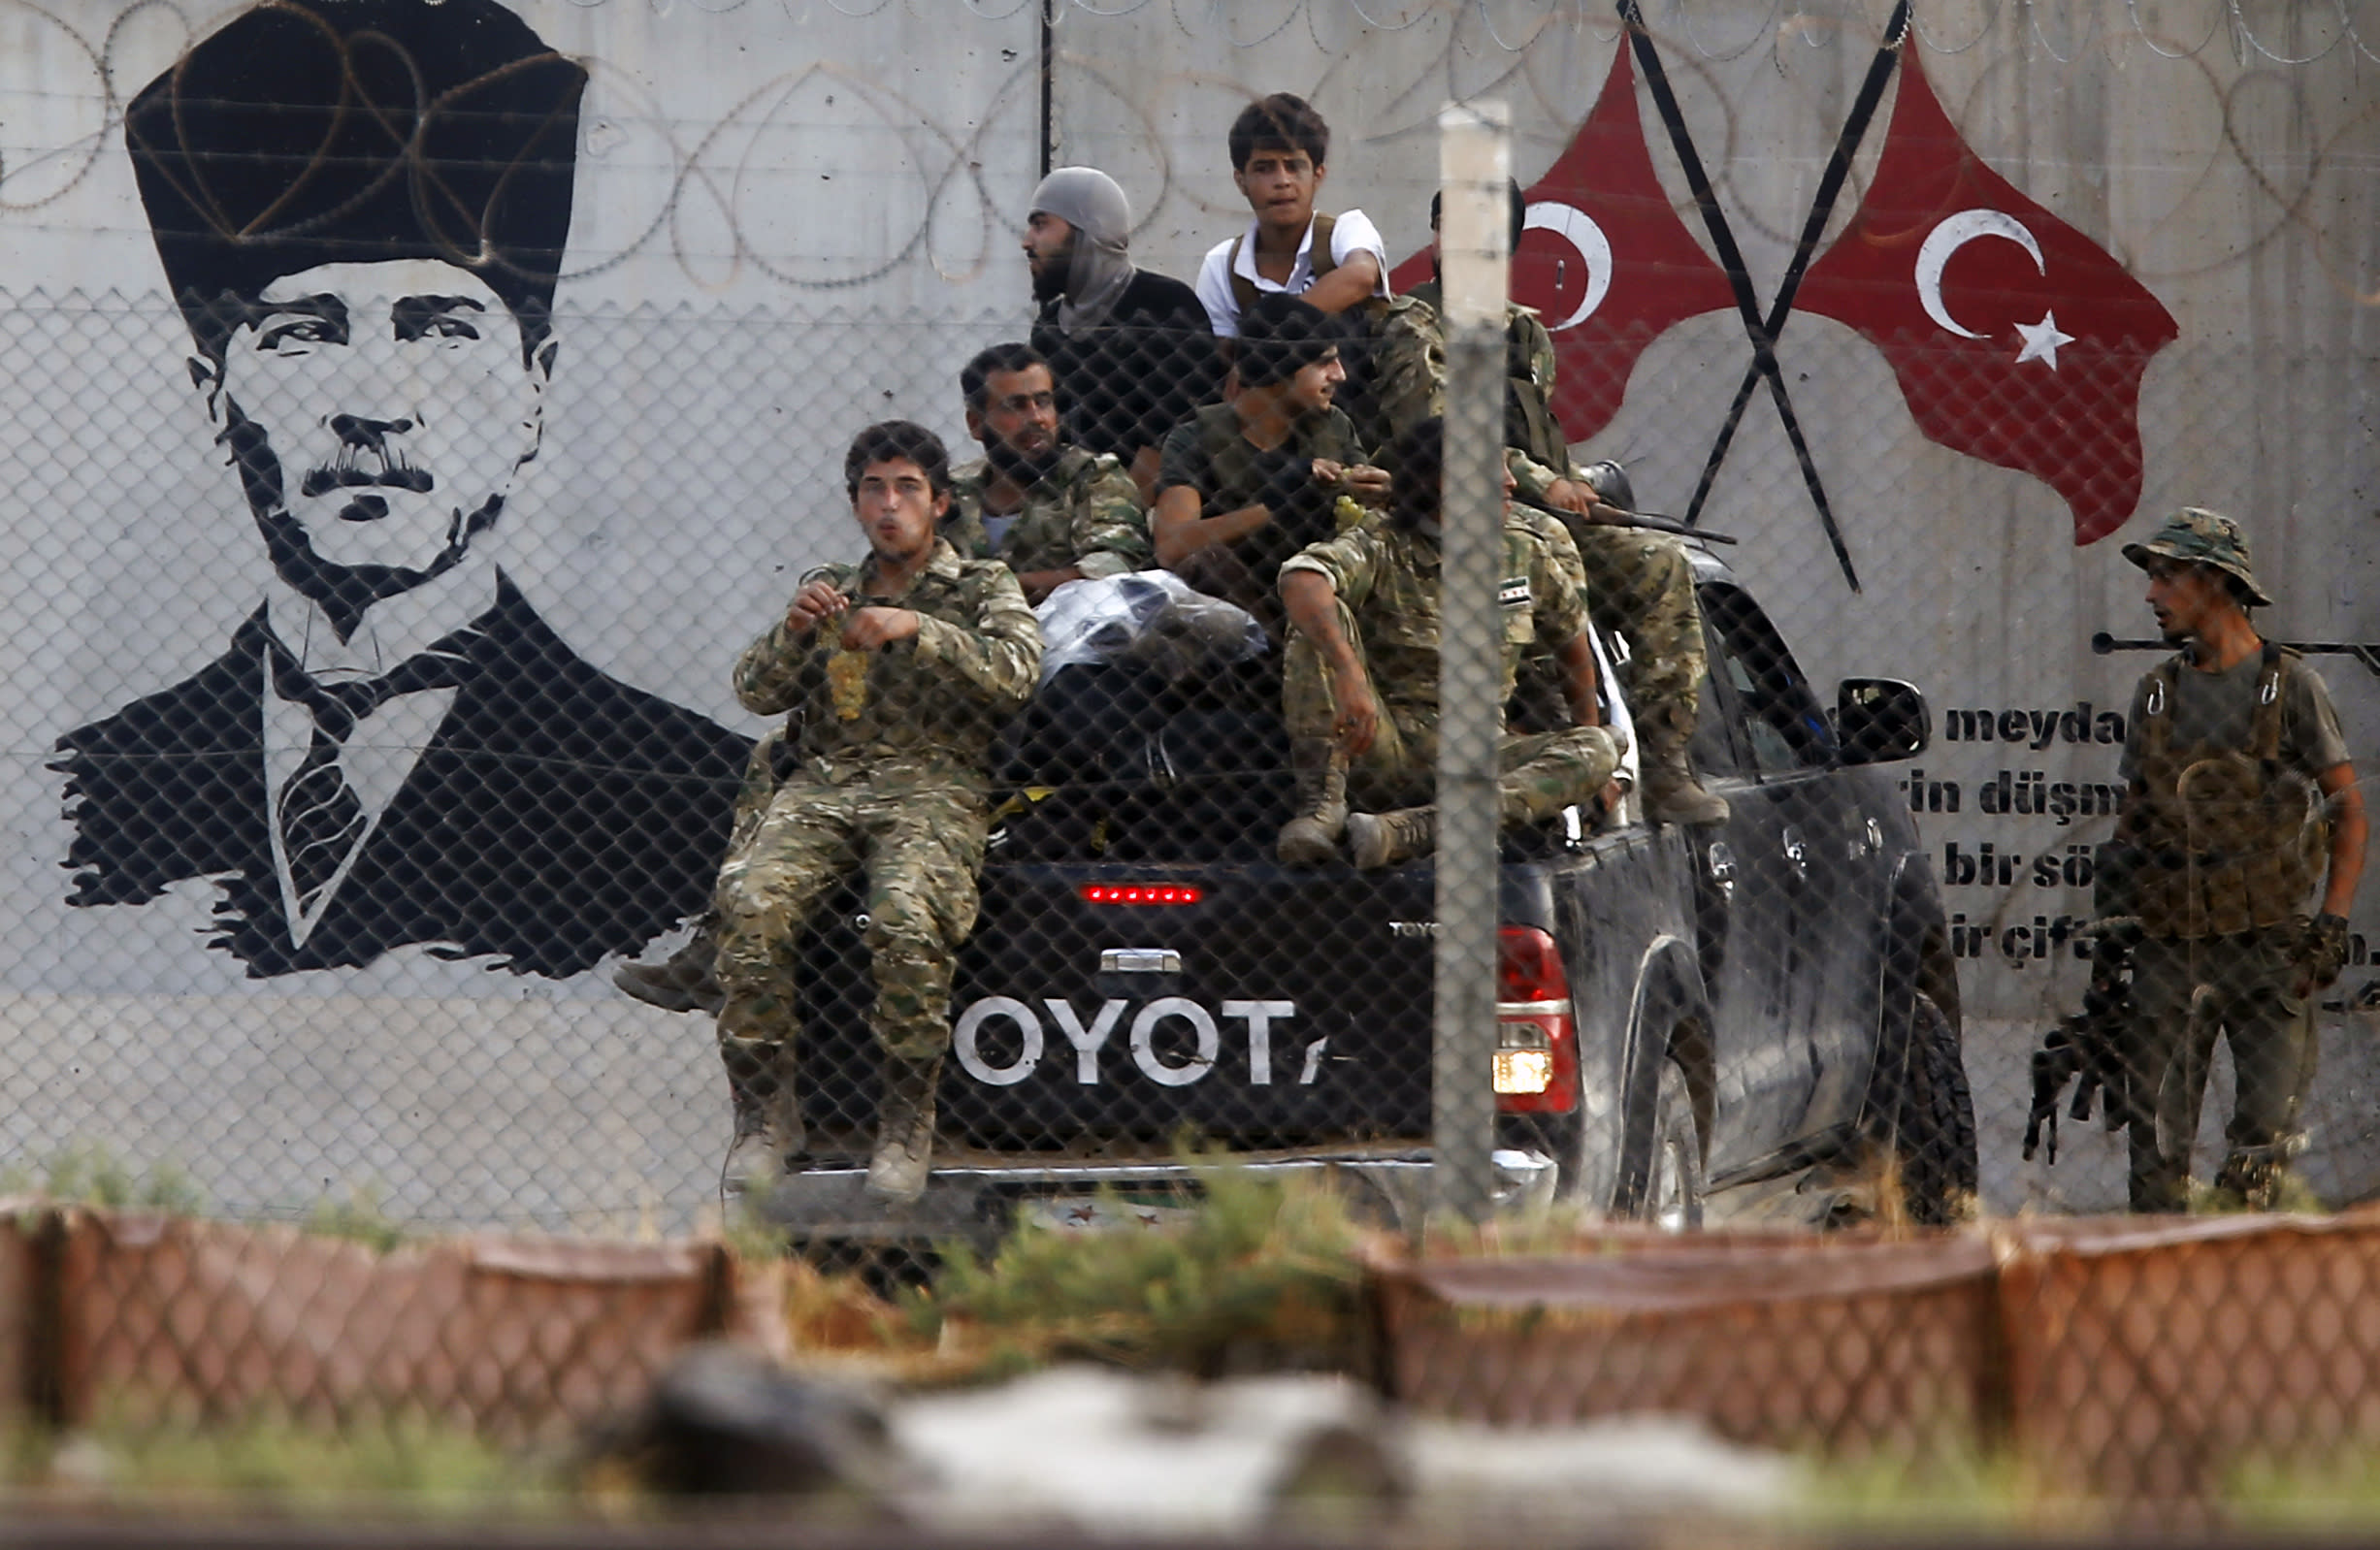 Turkish-backed Syrian opposition fighters on a pick up truck, drive past a graffiti of modern Turkey's founder Mustafa Kemal Ataturk as they cross the border between Turkey and Syria, in Akcakale, Sanliurfa province, southeastern Turkey, Thursday, Oct. 17, 2019. (AP Photo/Emrah Gurel)